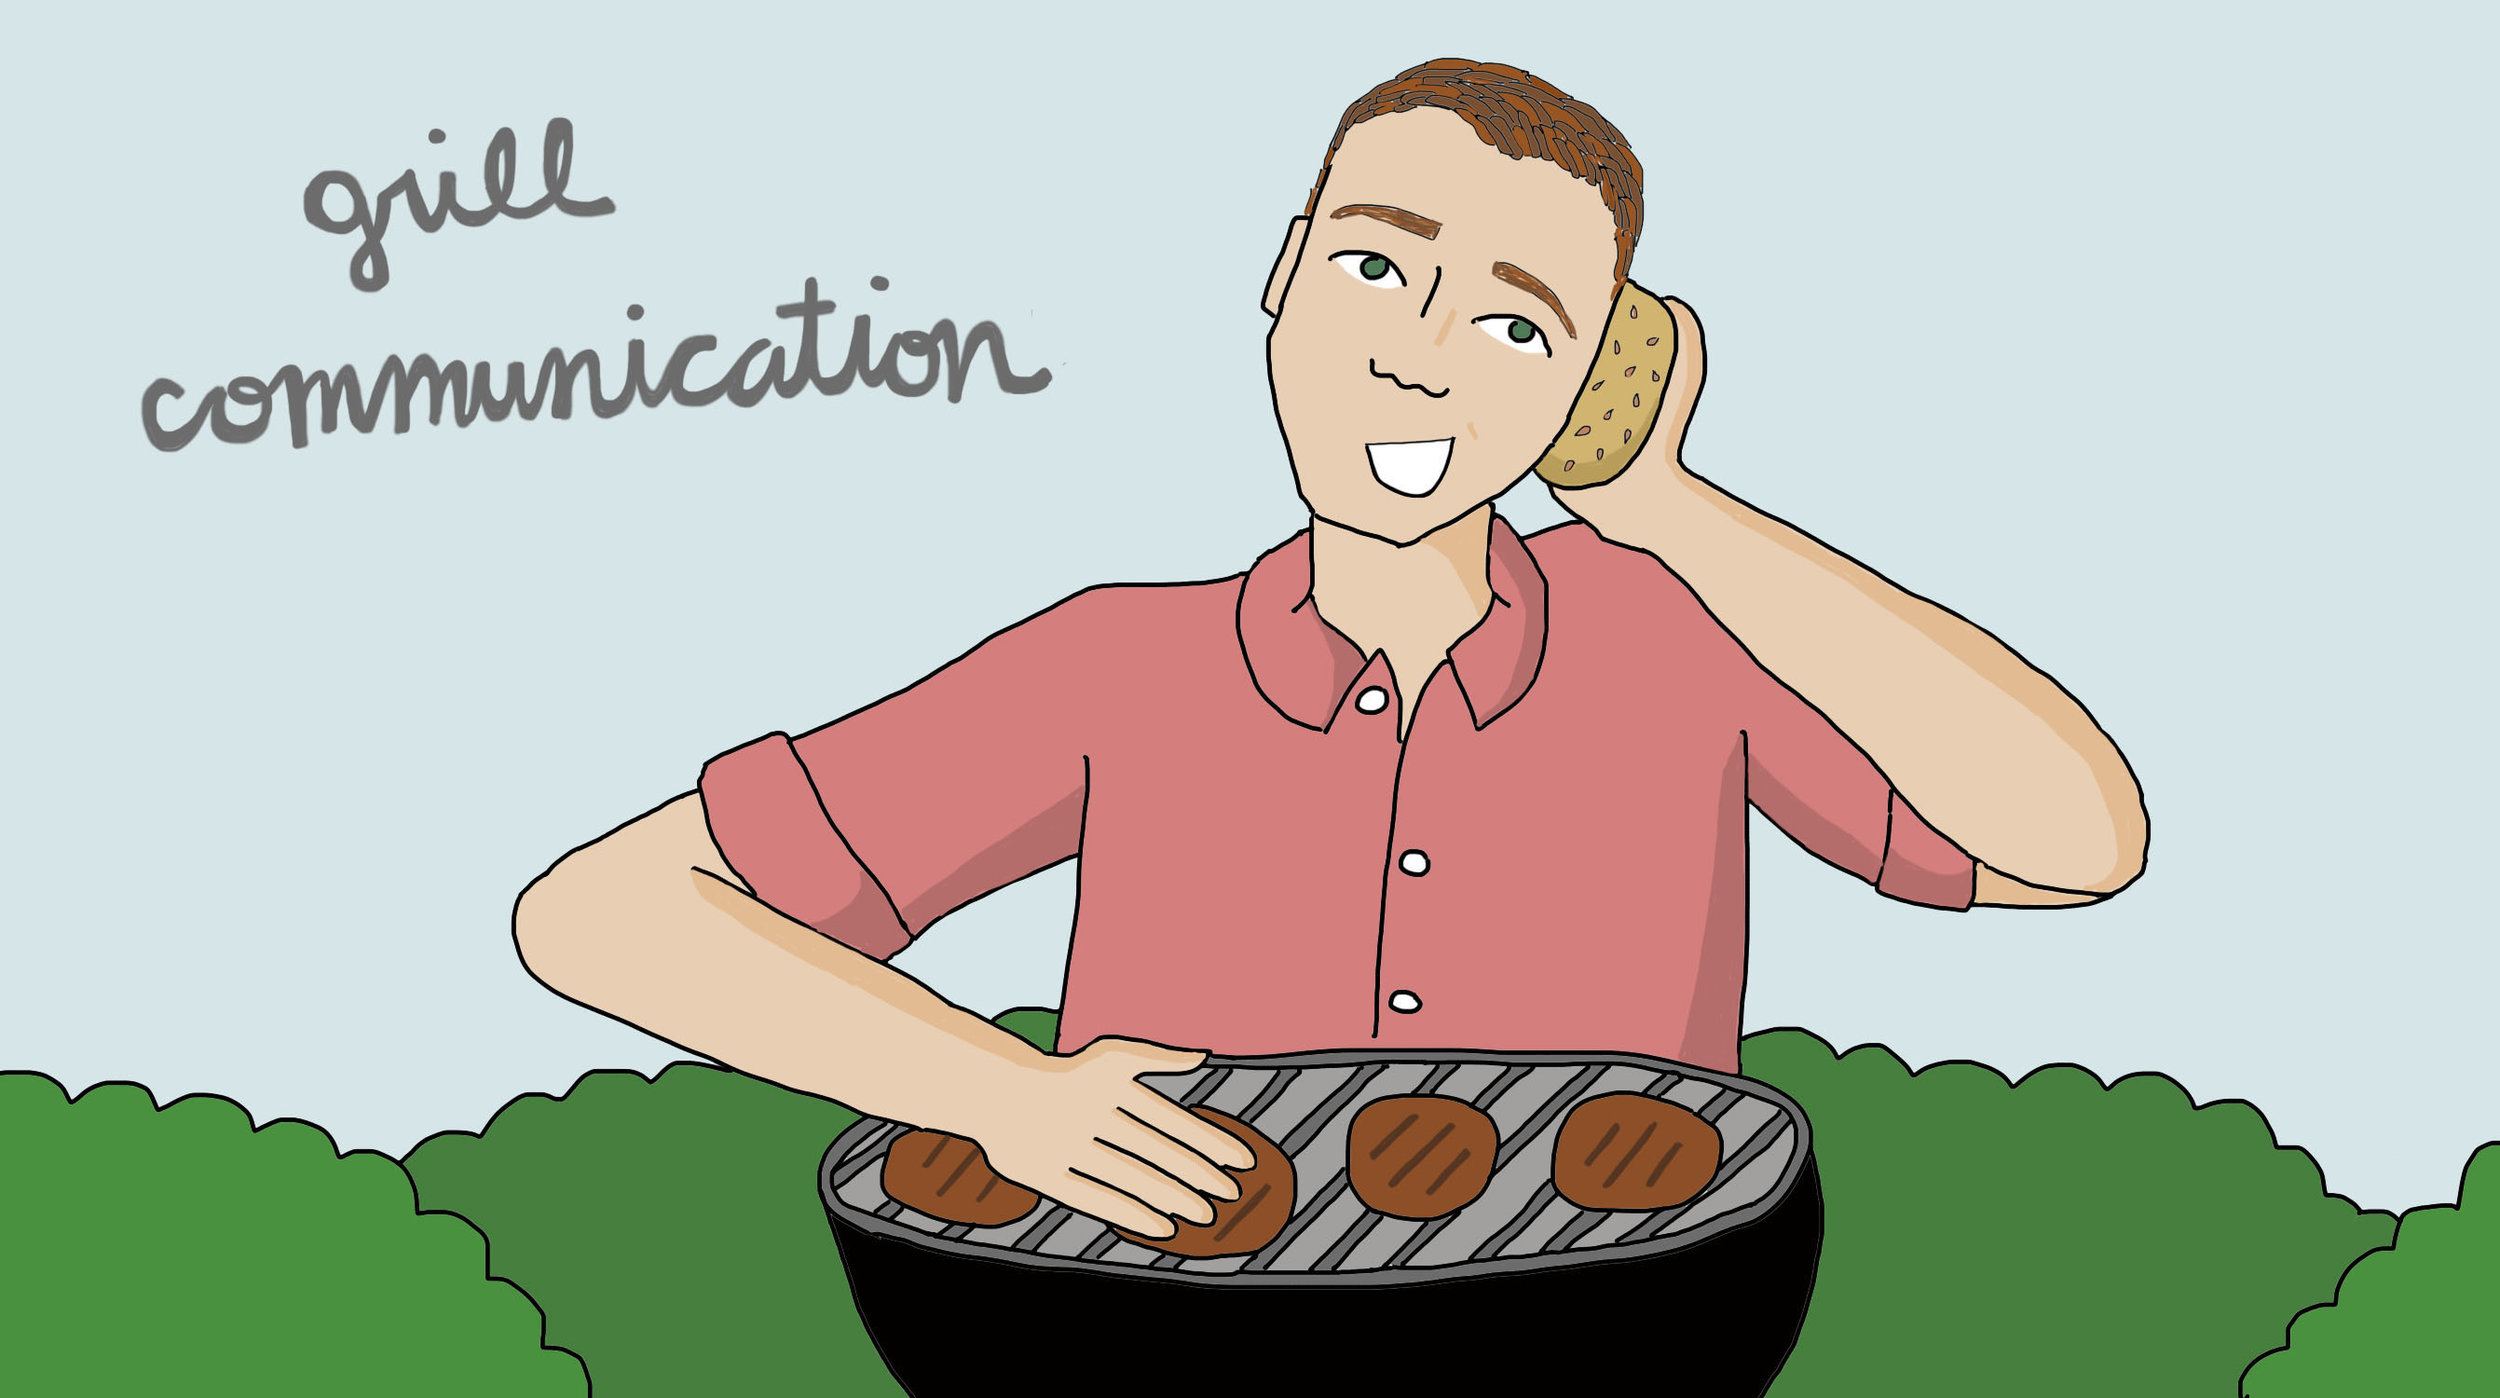 Grill Communication